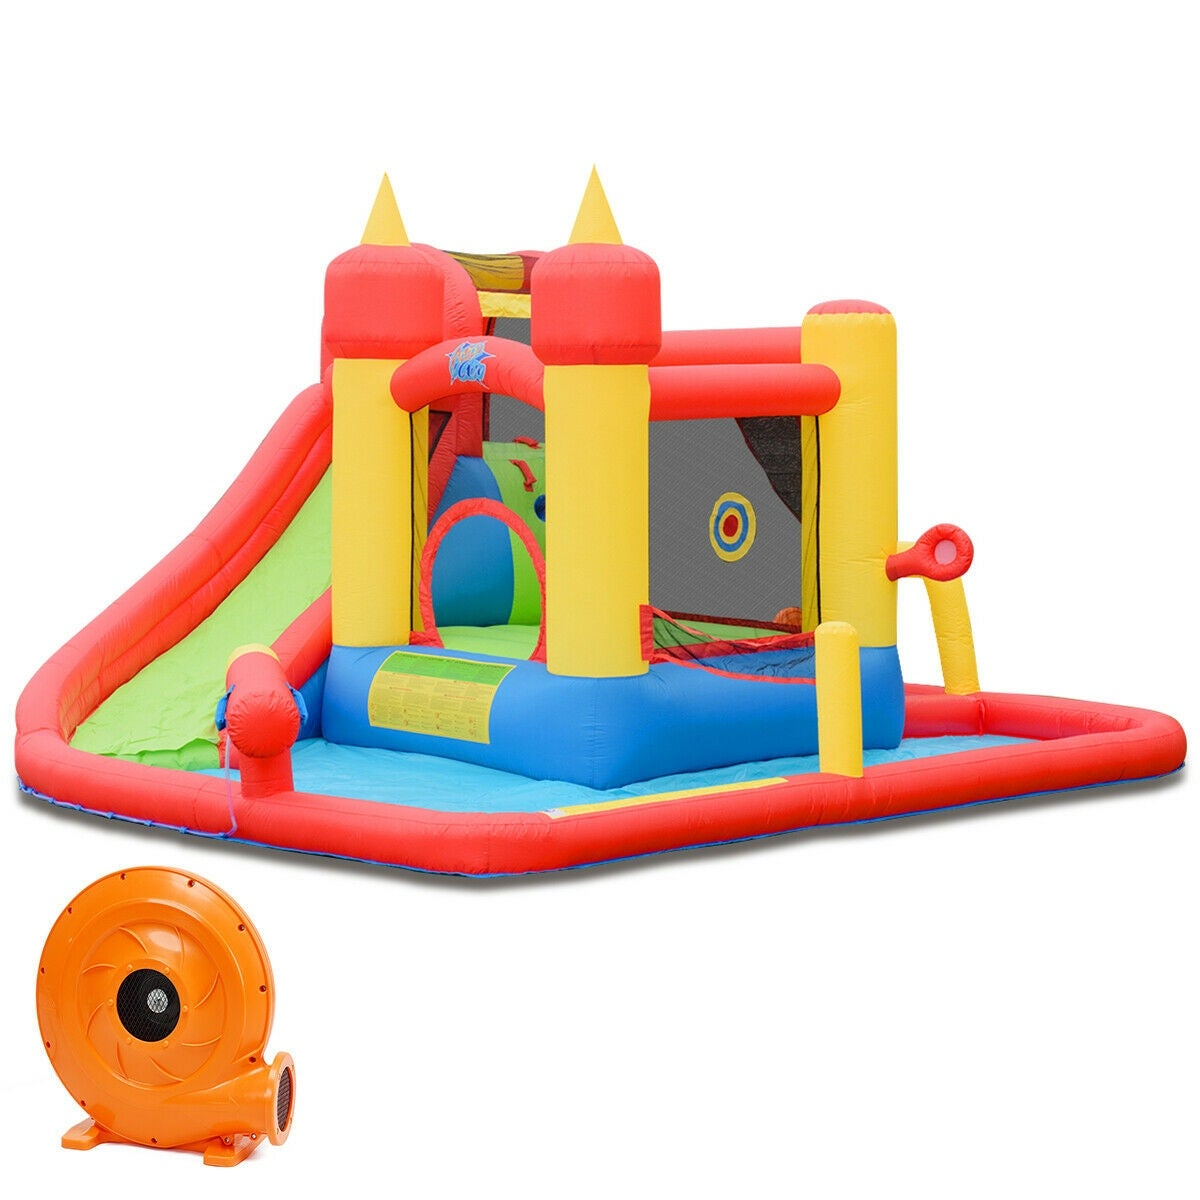 Picture of: Inflatable Water Slide Jumping Bounce House With 740 W Blower Multi Overstock 30751163